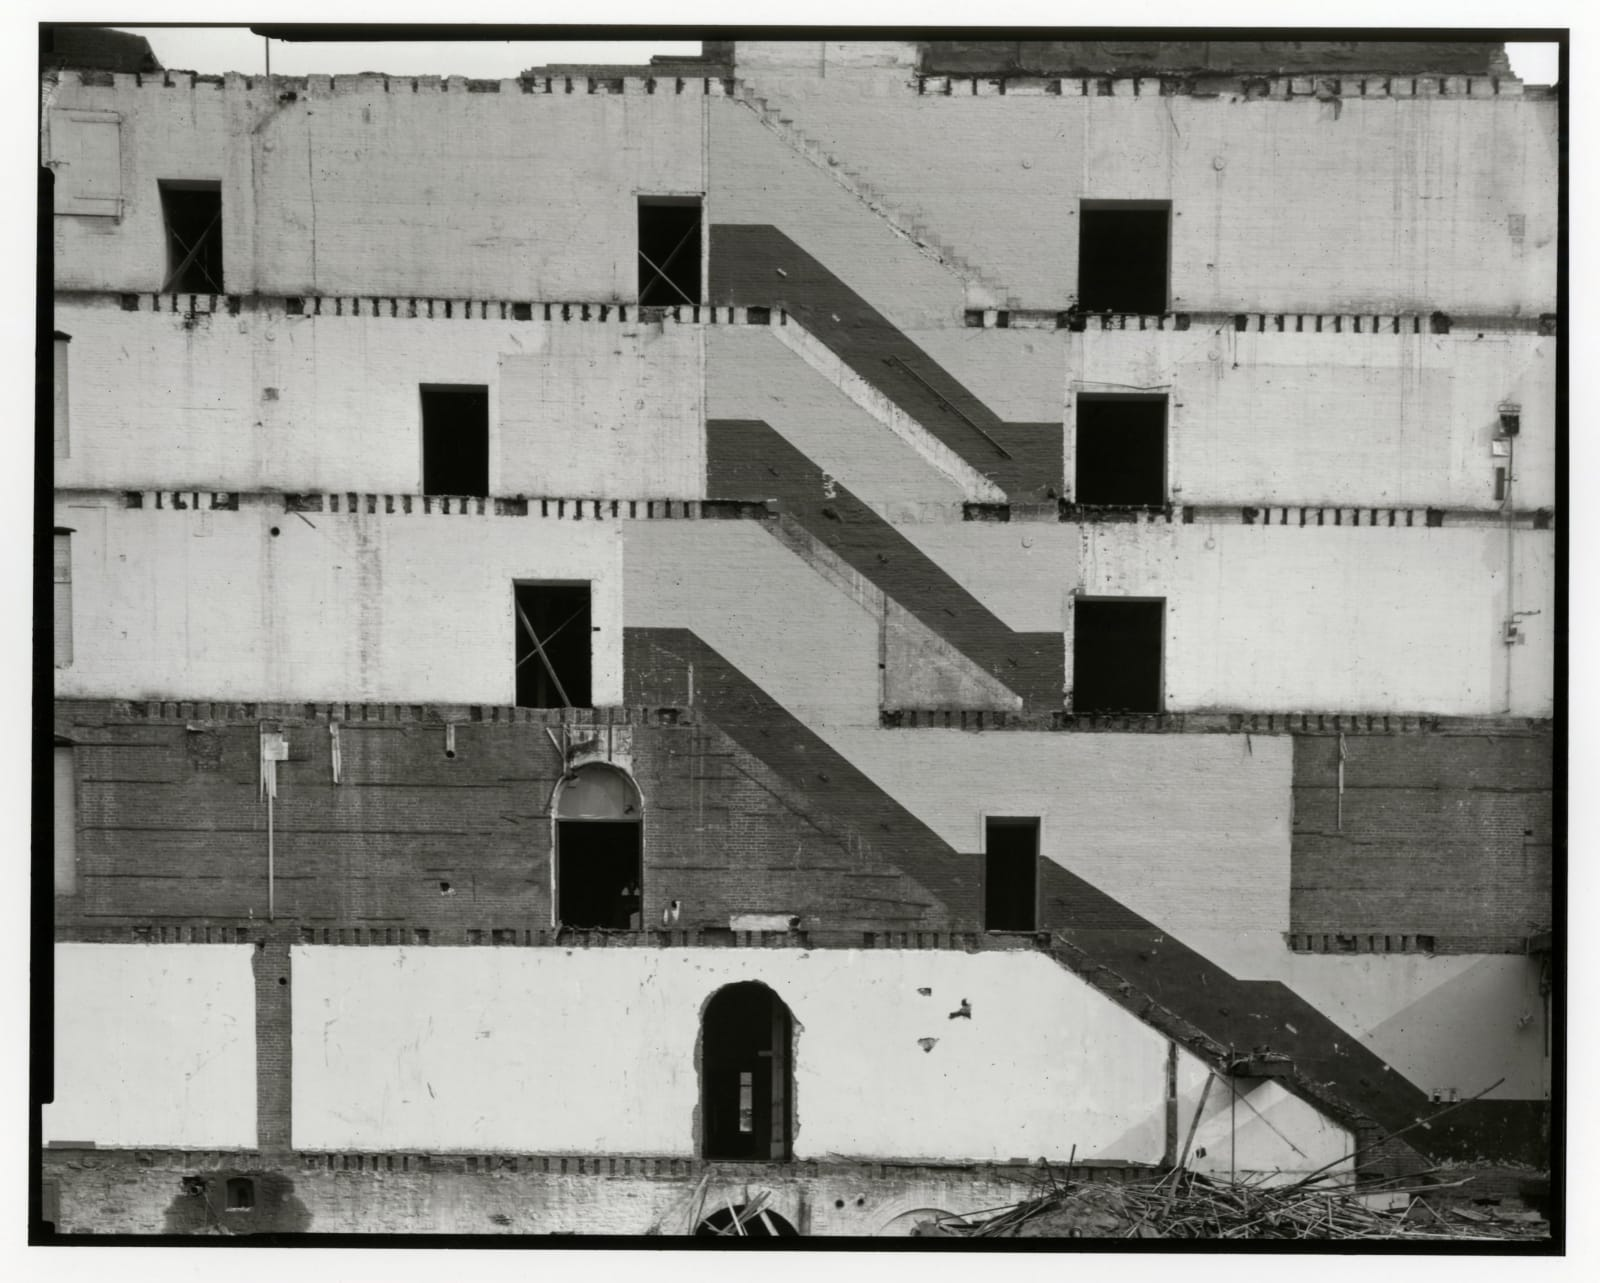 Danny Lyon - Wall Of The St George Building, Lower Manhattan, 1967